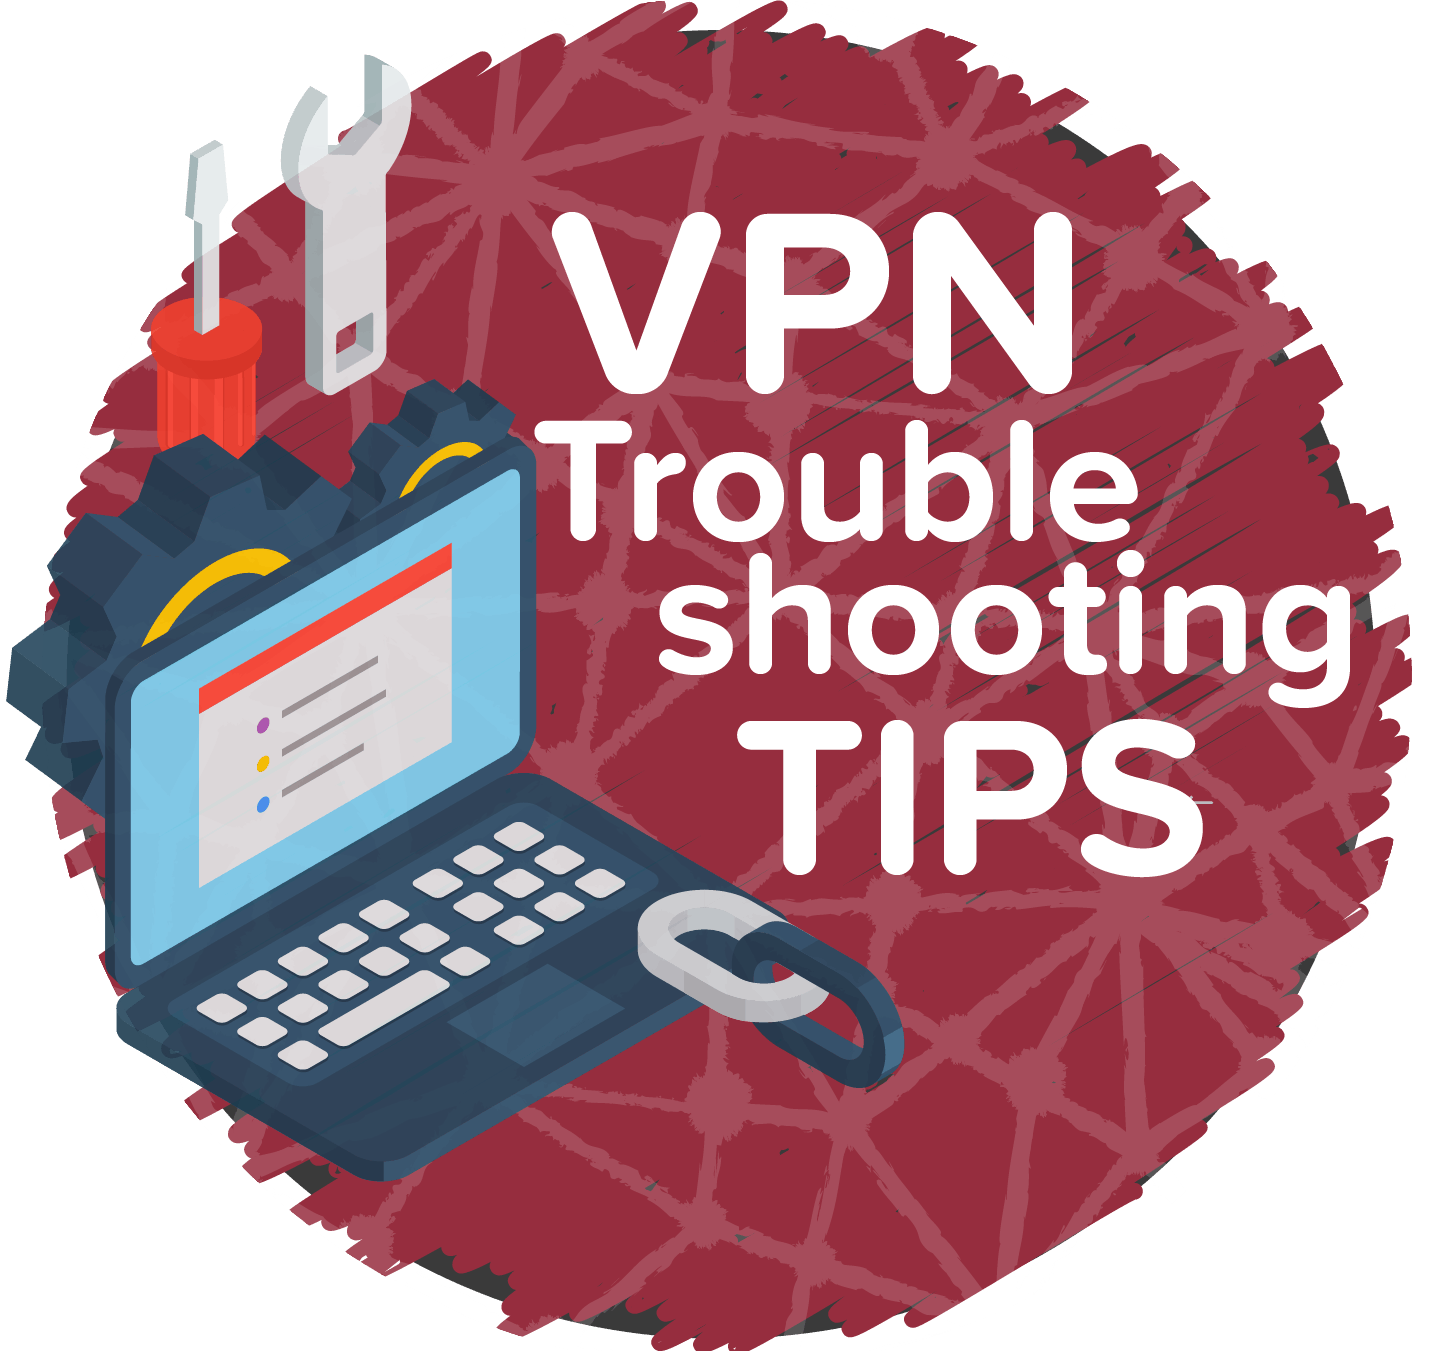 20 Tips for Troubleshooting (& Fixing) Your VPN Connection